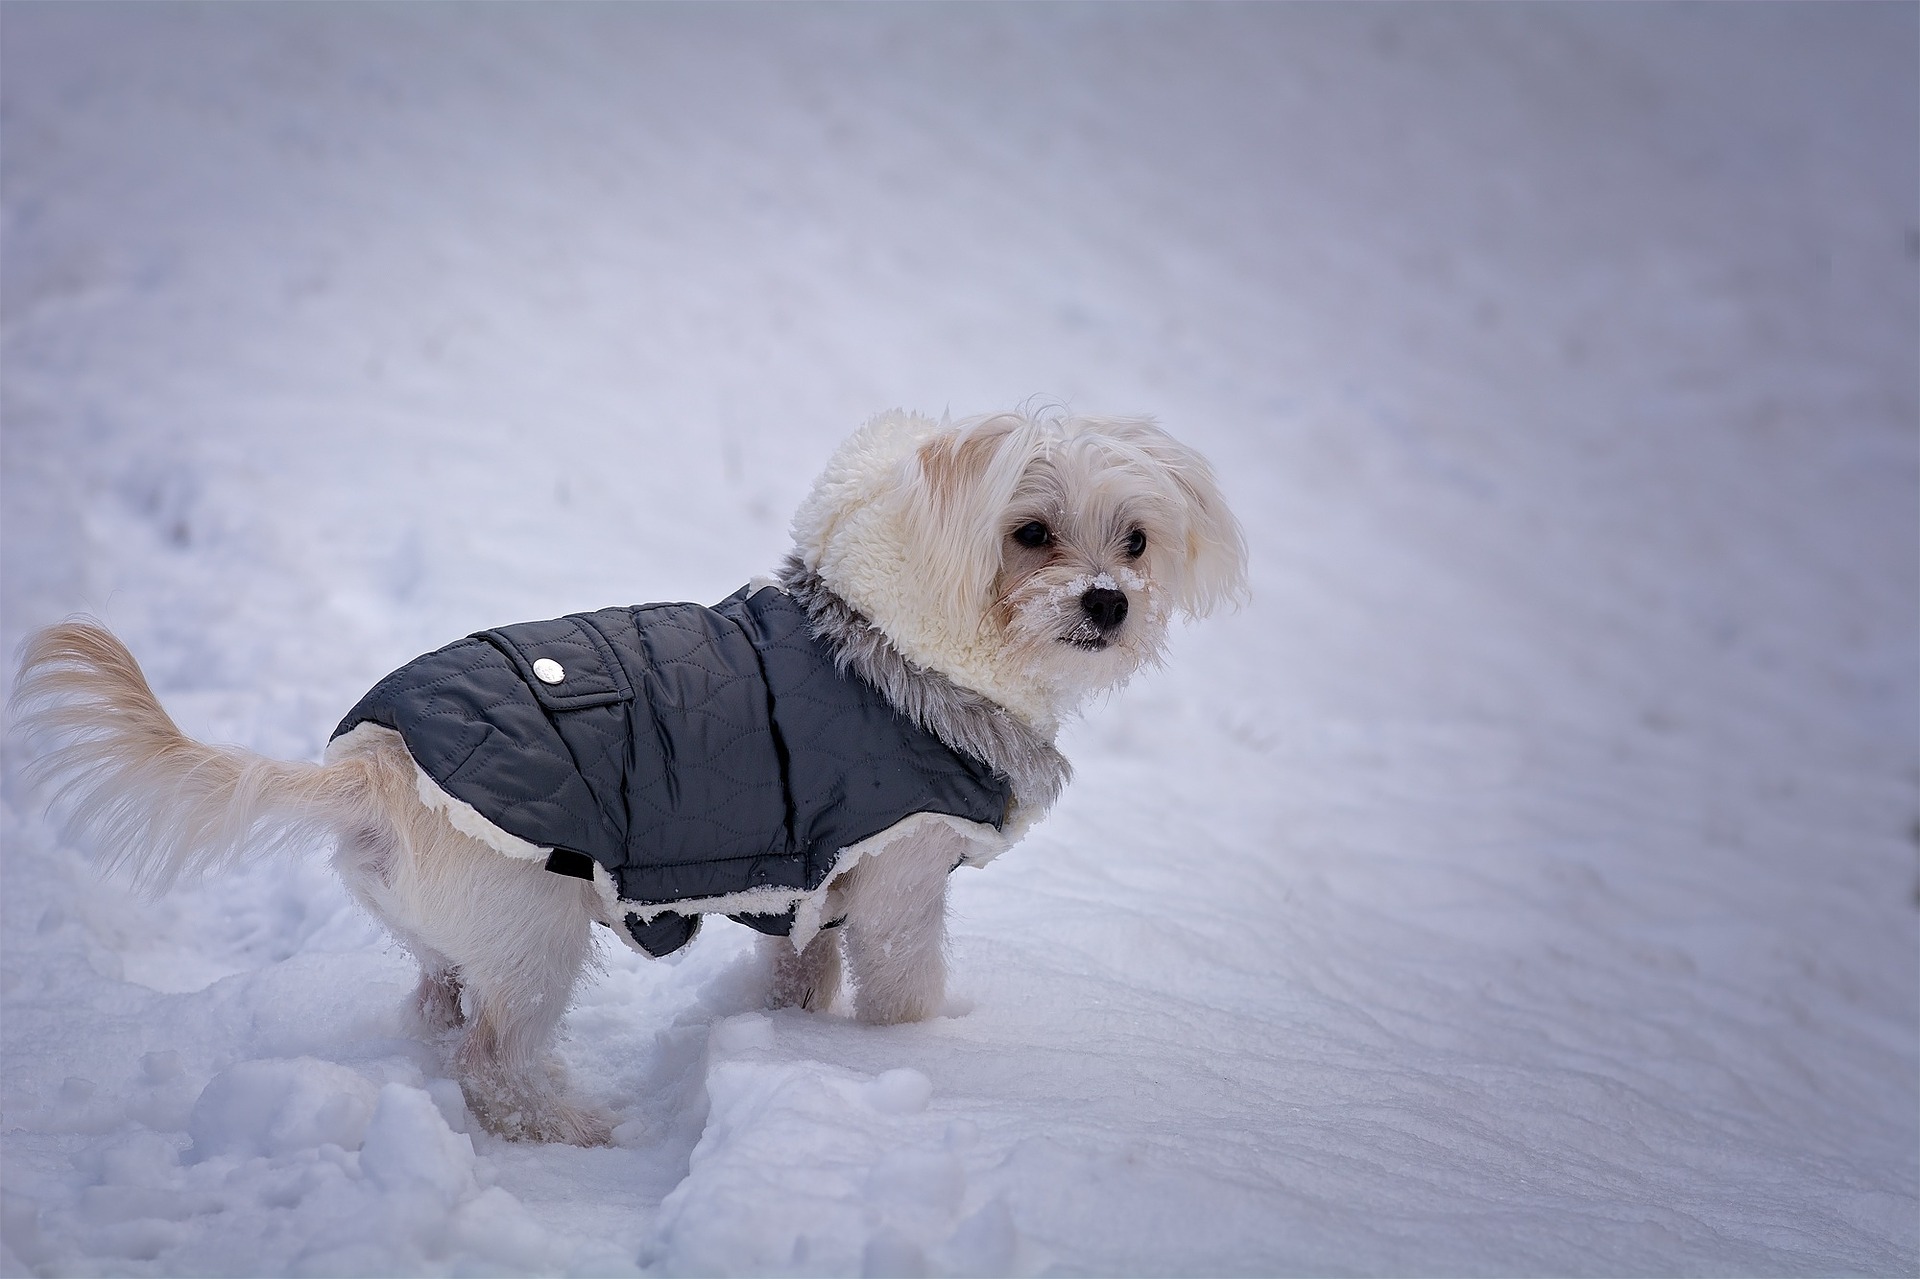 A dog wearing a winter jacket